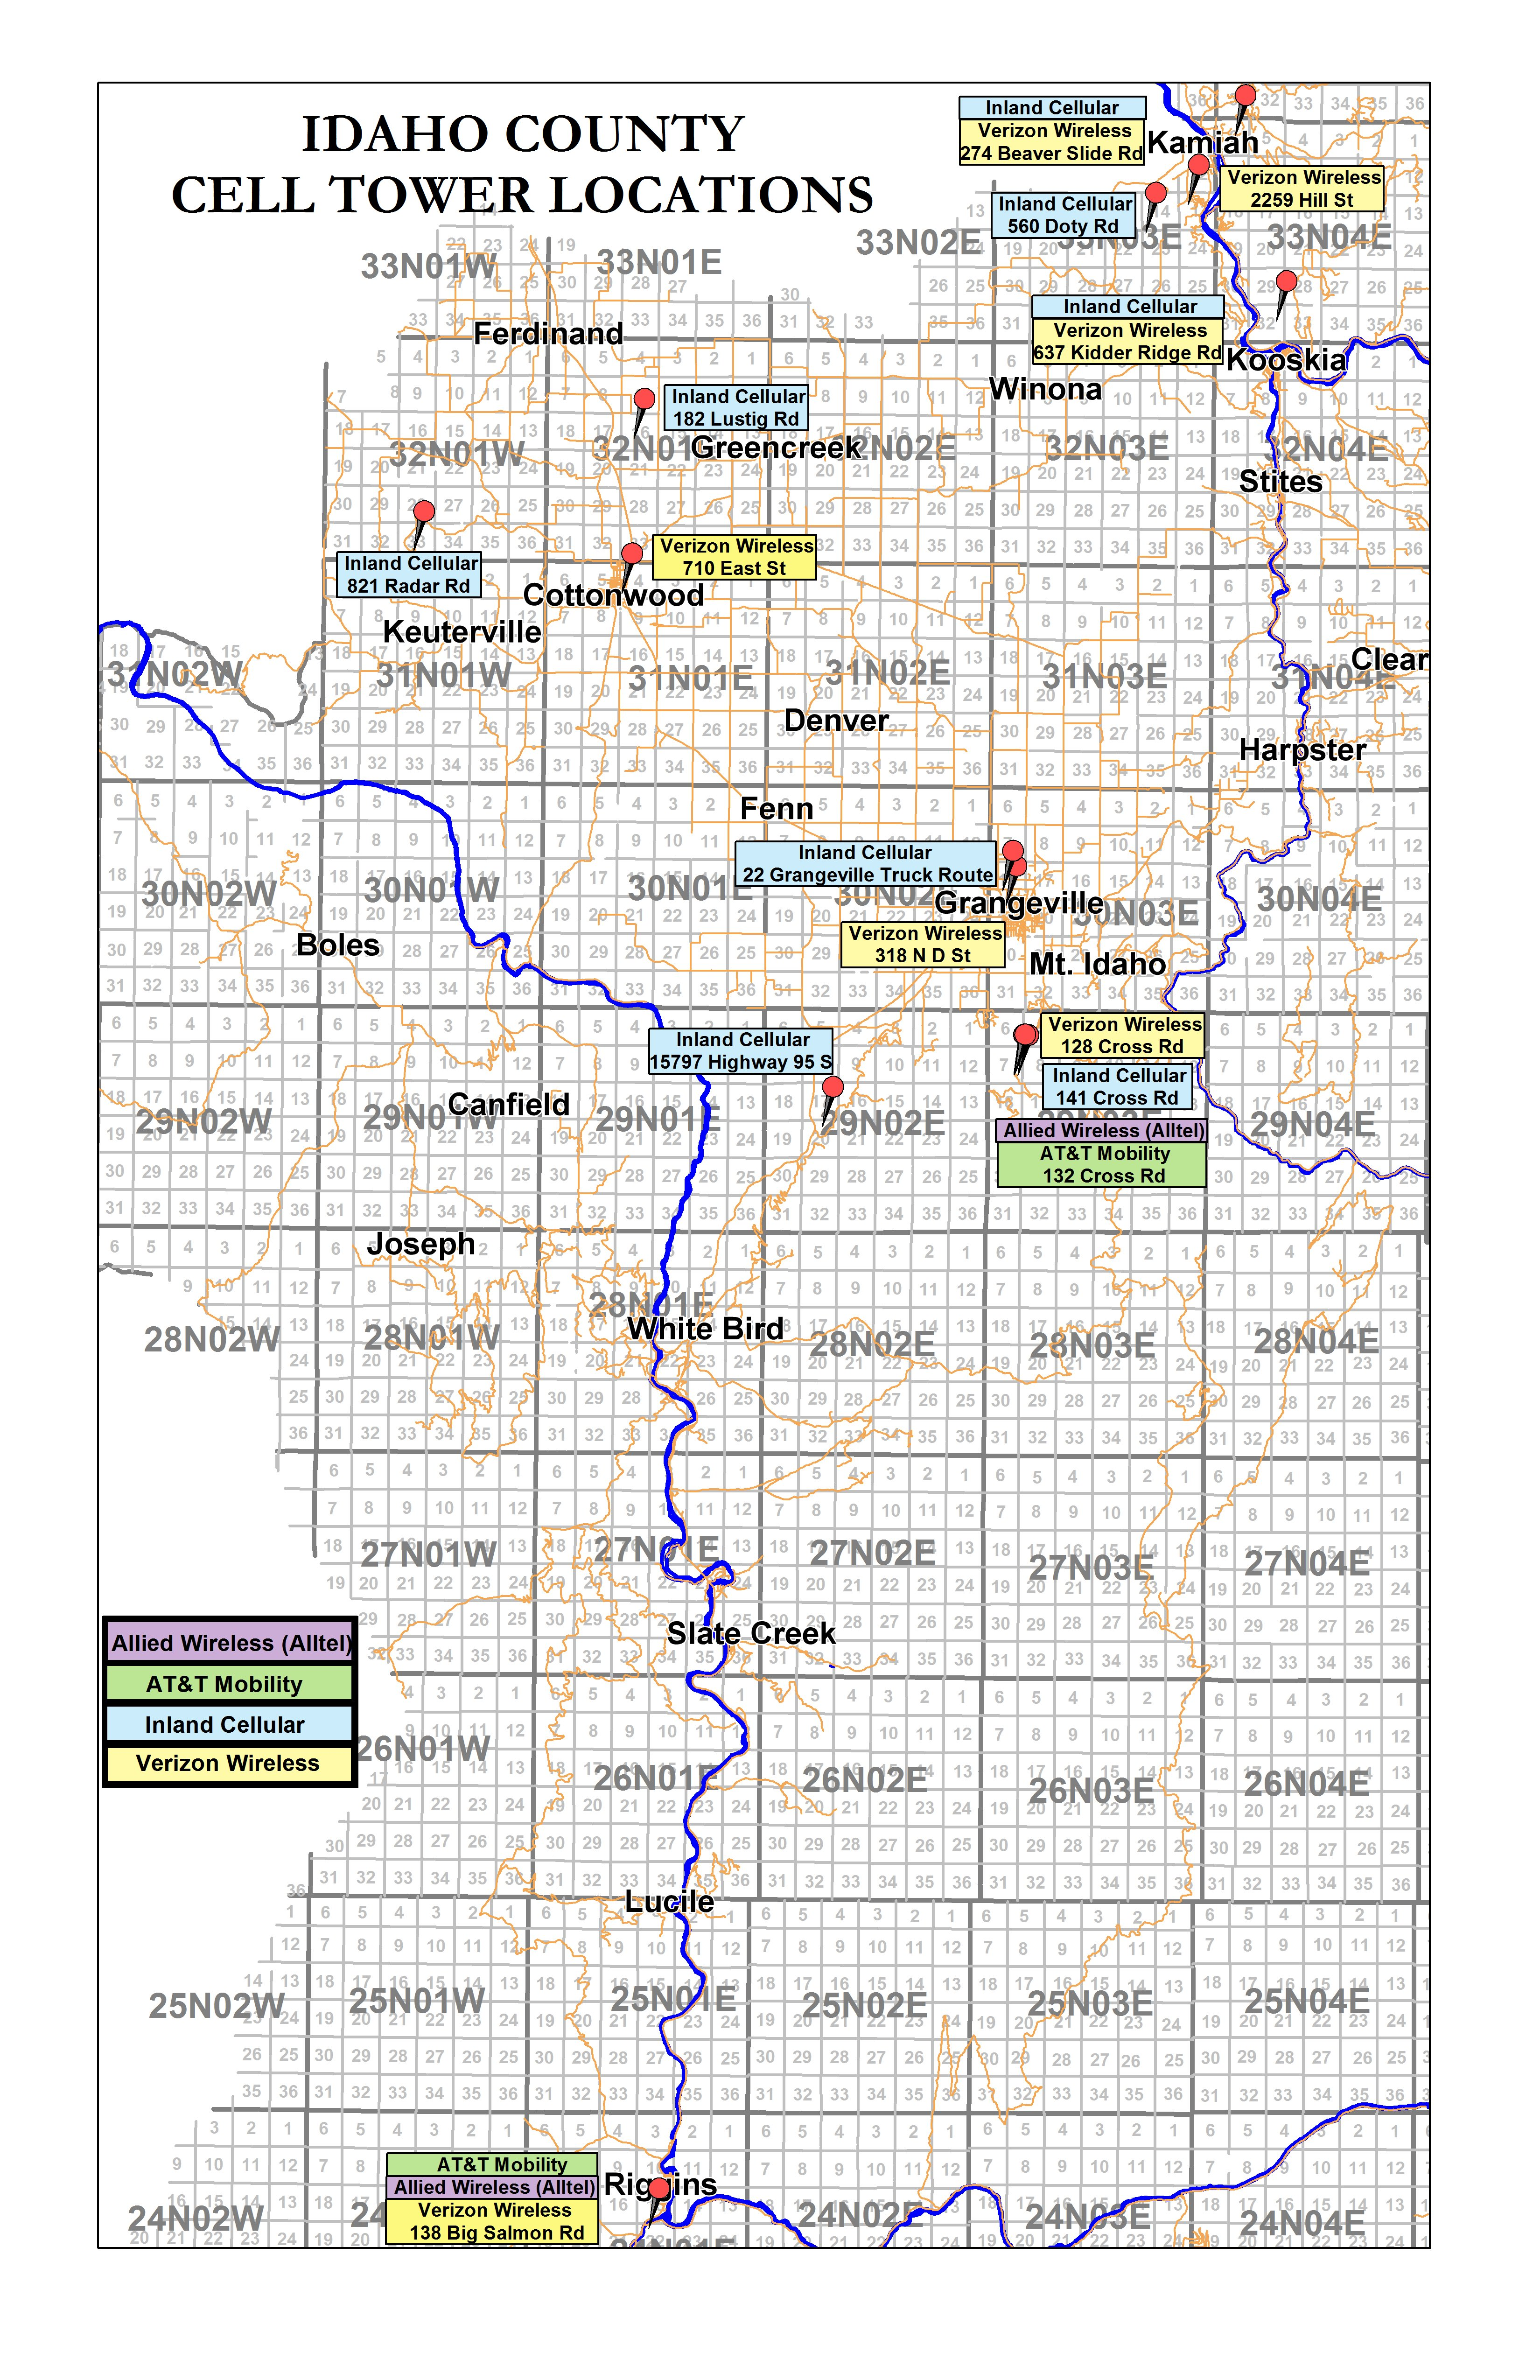 Cell Tower Locations – Official Idaho County Site on